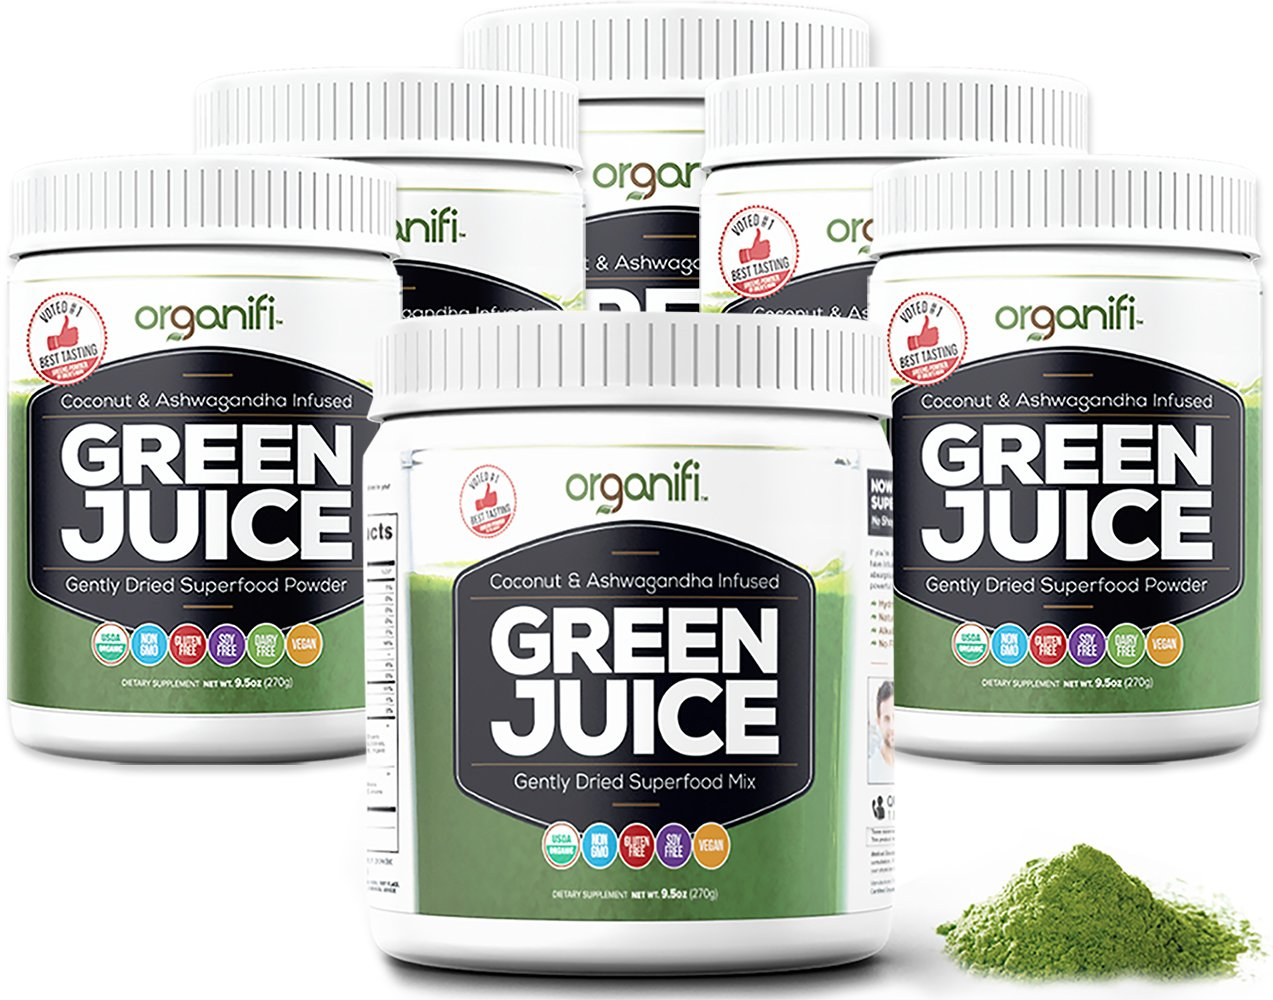 Organifi: Green Juice - Organic Superfood Supplement Powder - 30 Day Supply - USDA Certified Organic Vegan Greens- Hydrates and Revitalizes - Boost Immune System - Support Relaxation and Sleep - 6PK